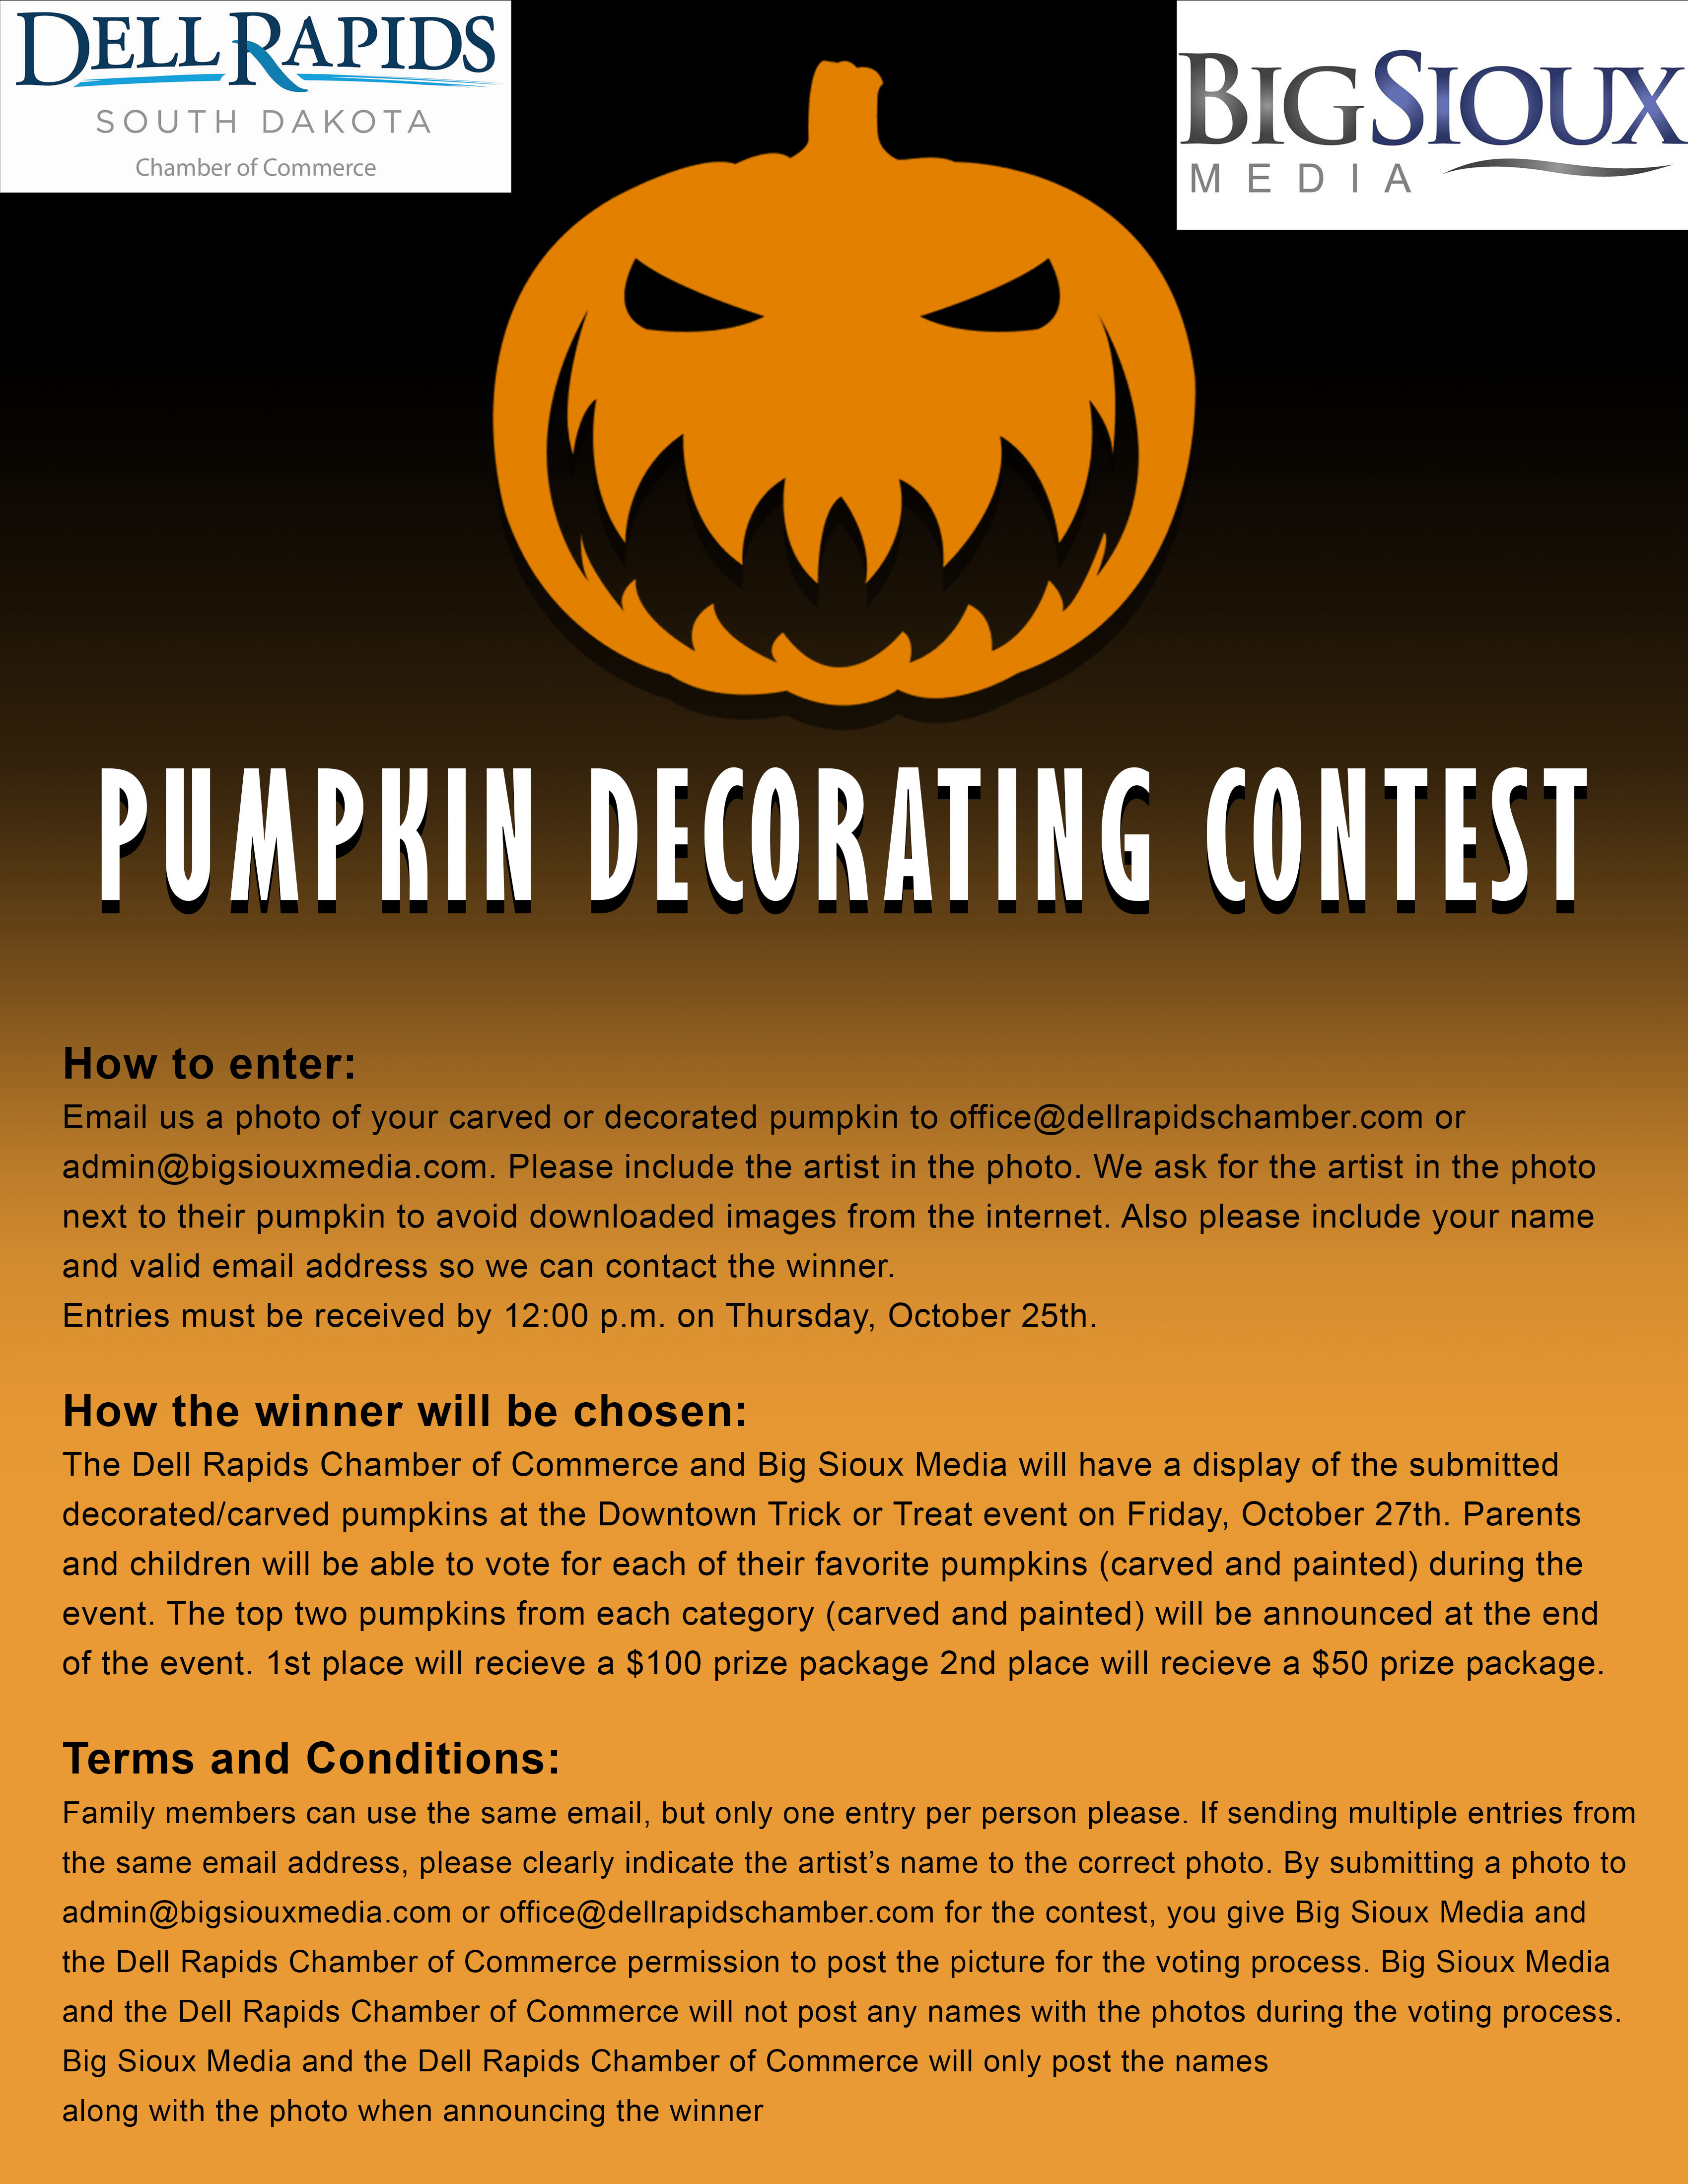 Pumpkin Decorating Contest 2018 Big Sioux Media and Dell Rapids Chamber of commerce